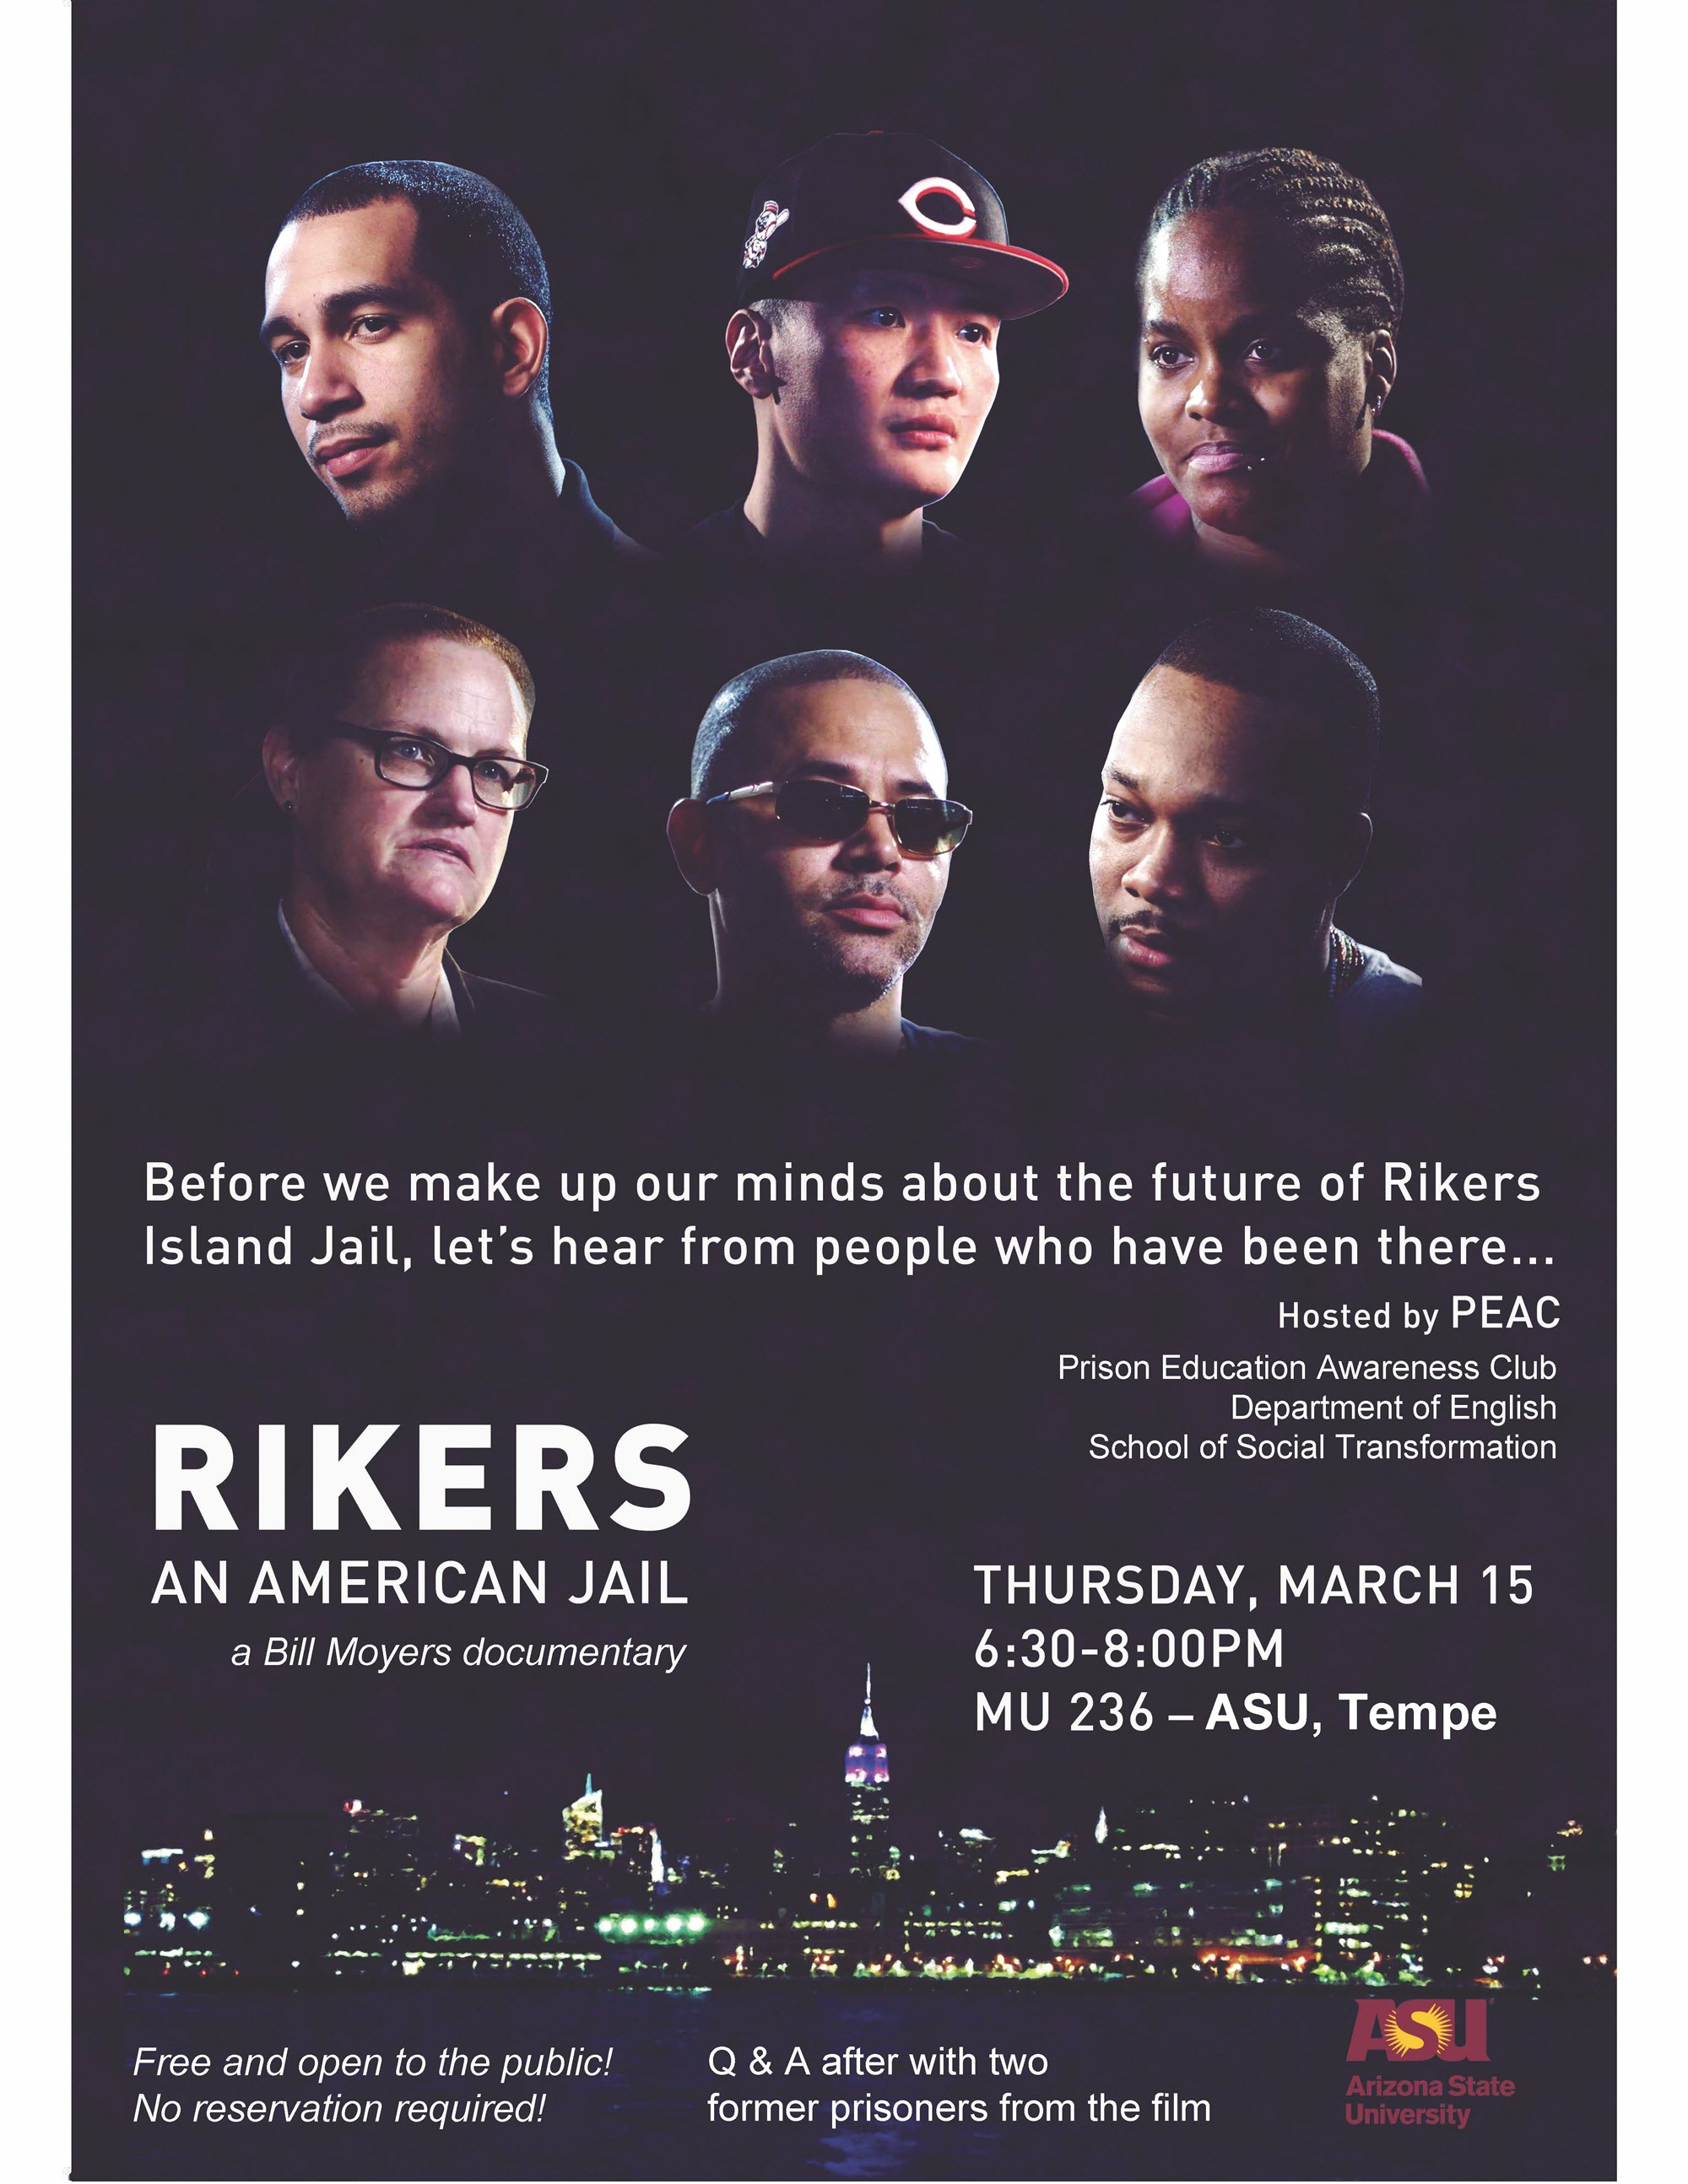 Poster image for Rikers documentary